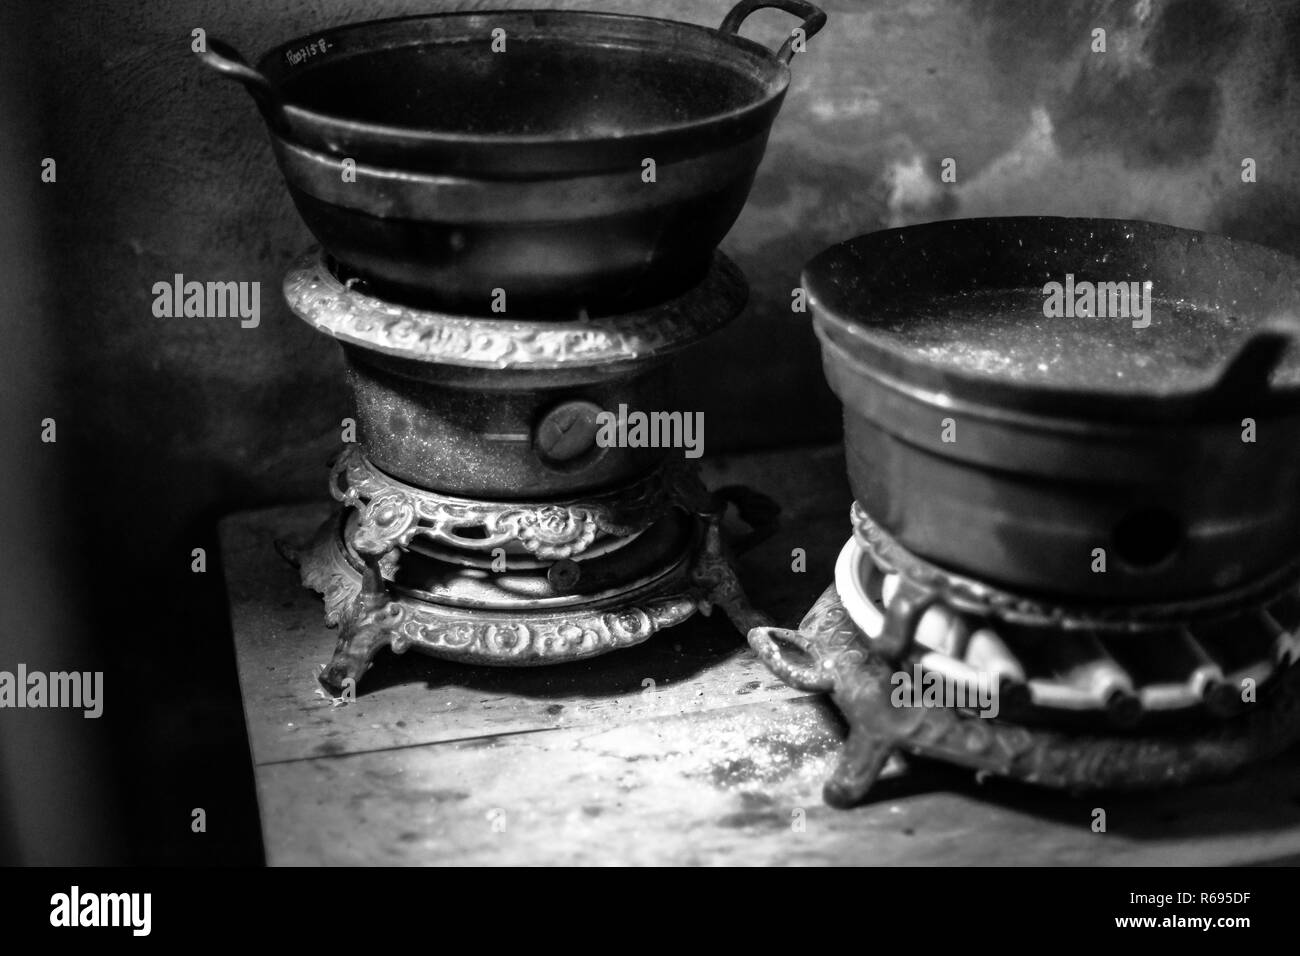 . The authentic kitchen utensils. Vintage kettle and old kerosene stove. - Stock Image